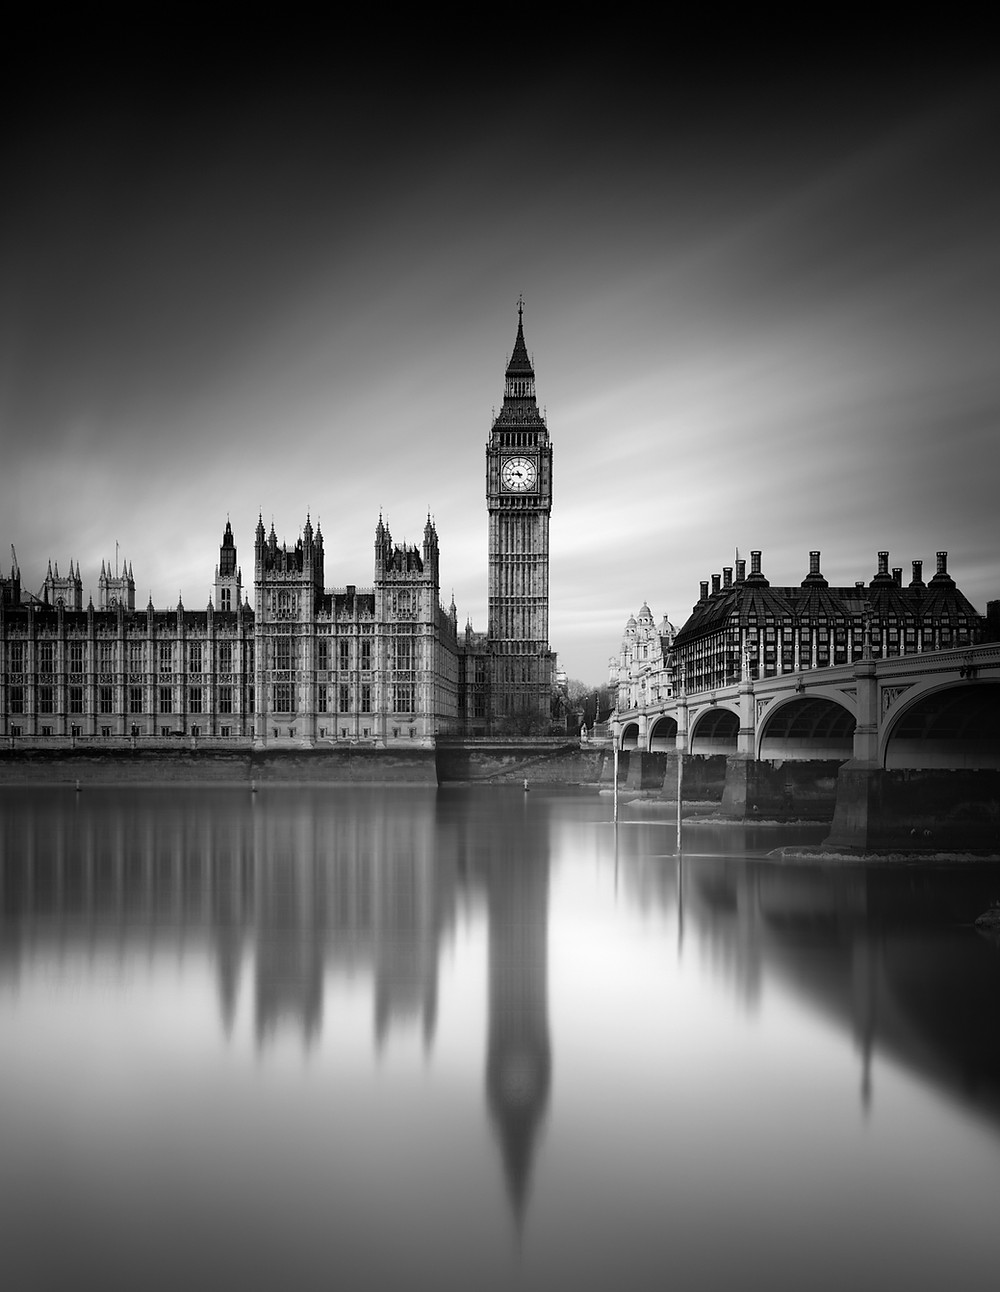 Black and white long exposure photography workshop